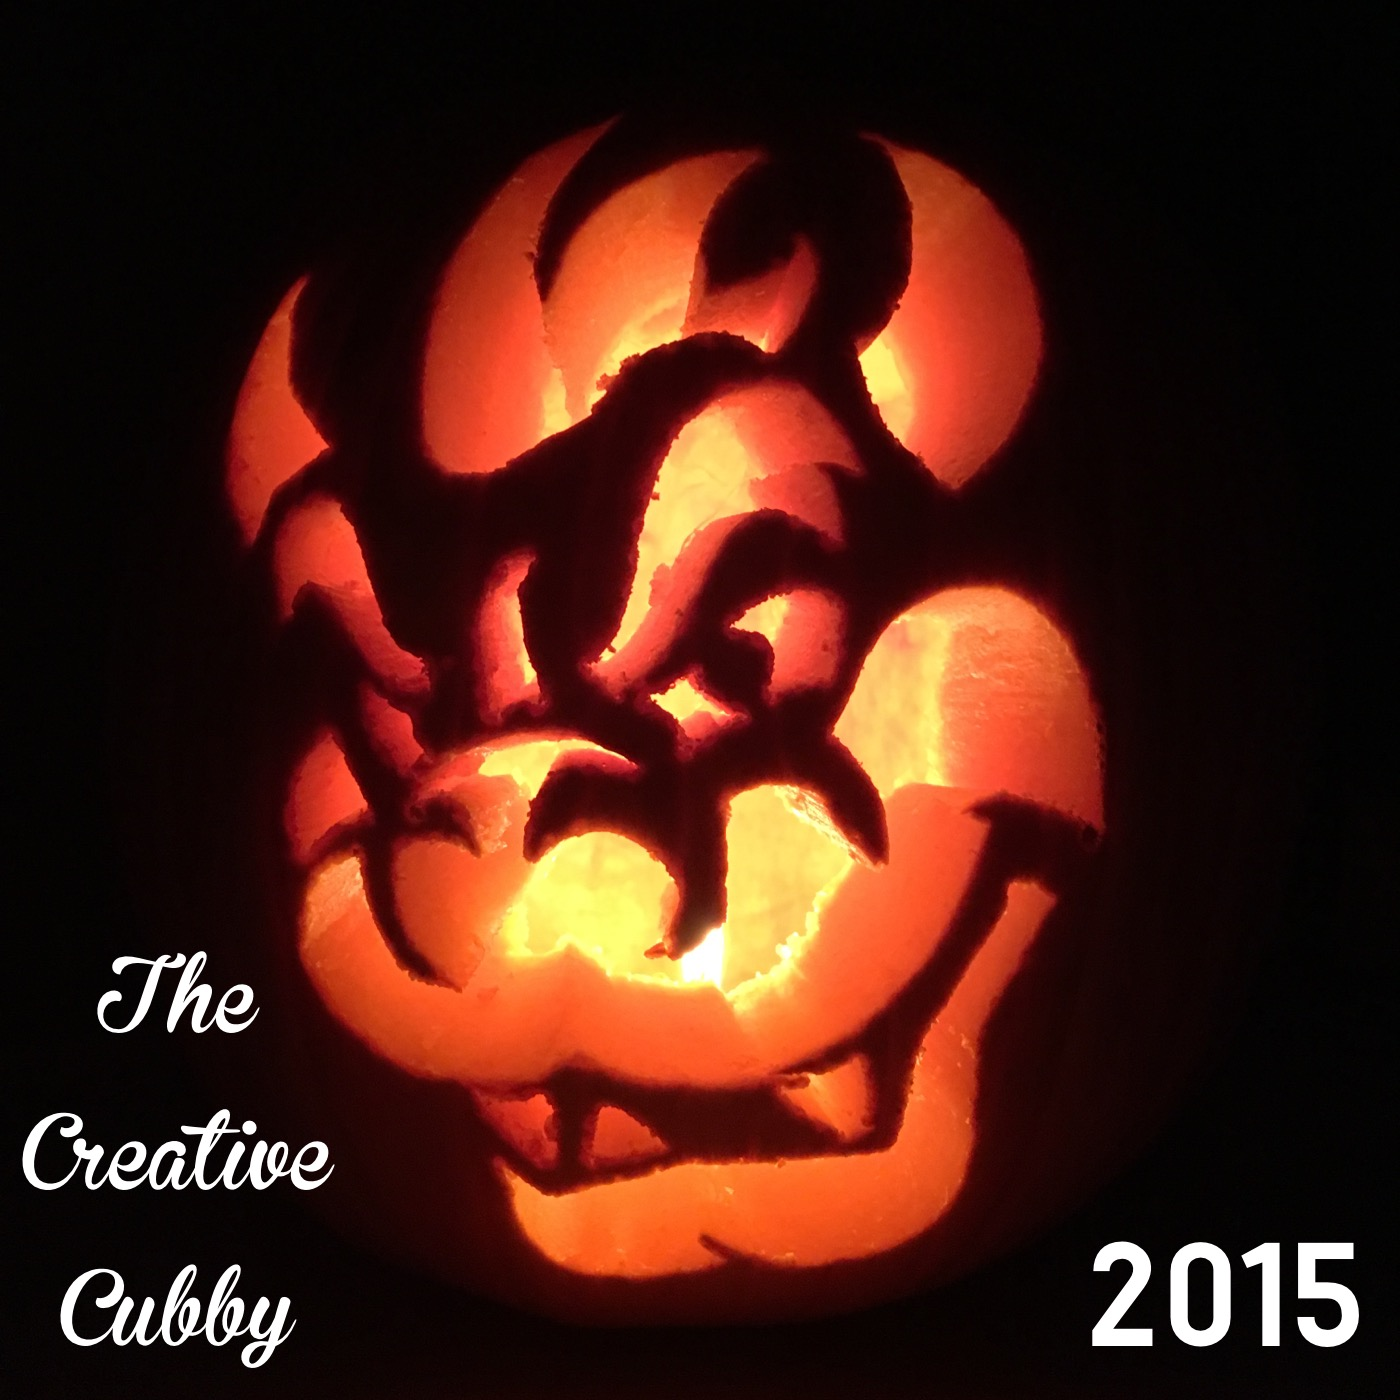 The Creative Cubby: Pumpkin Carving 2016